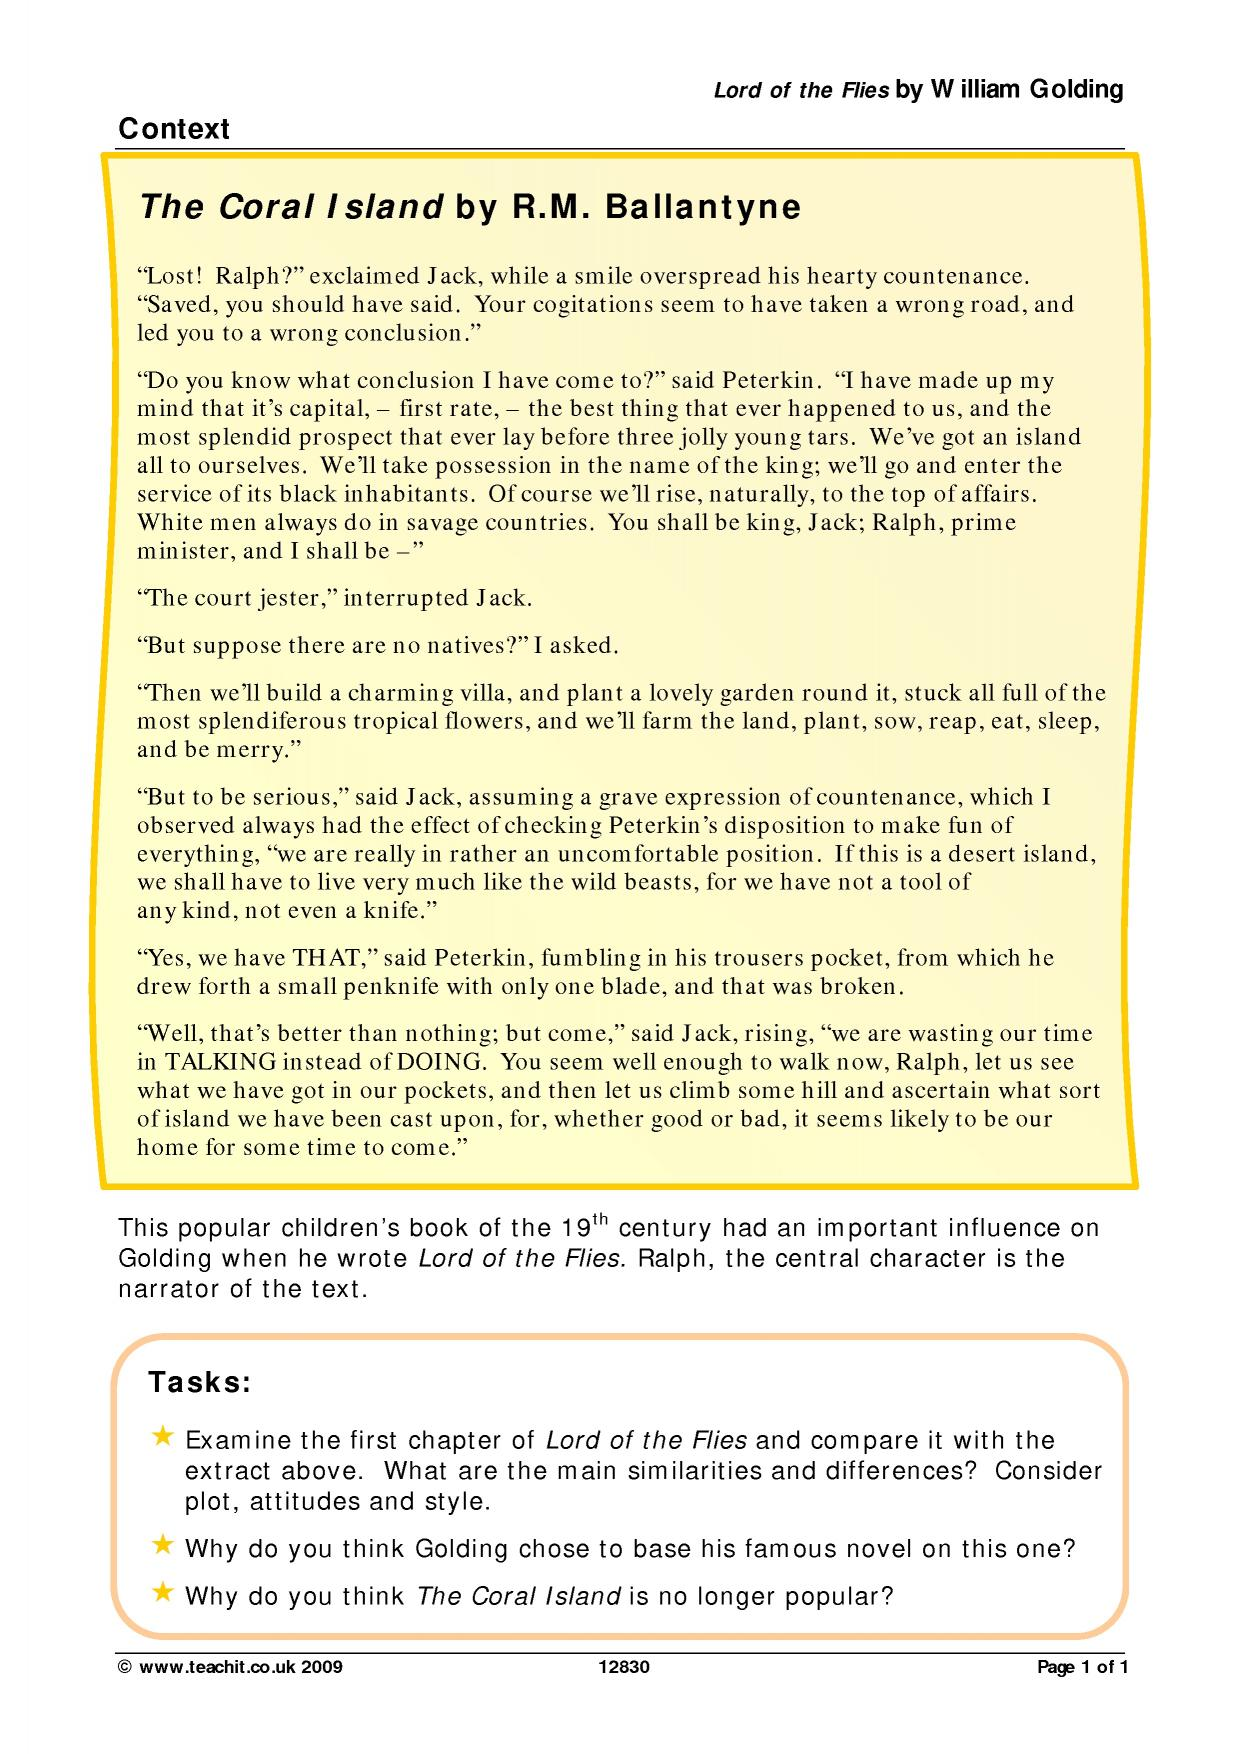 ks prose  lord of the flies by william golding  teachit english